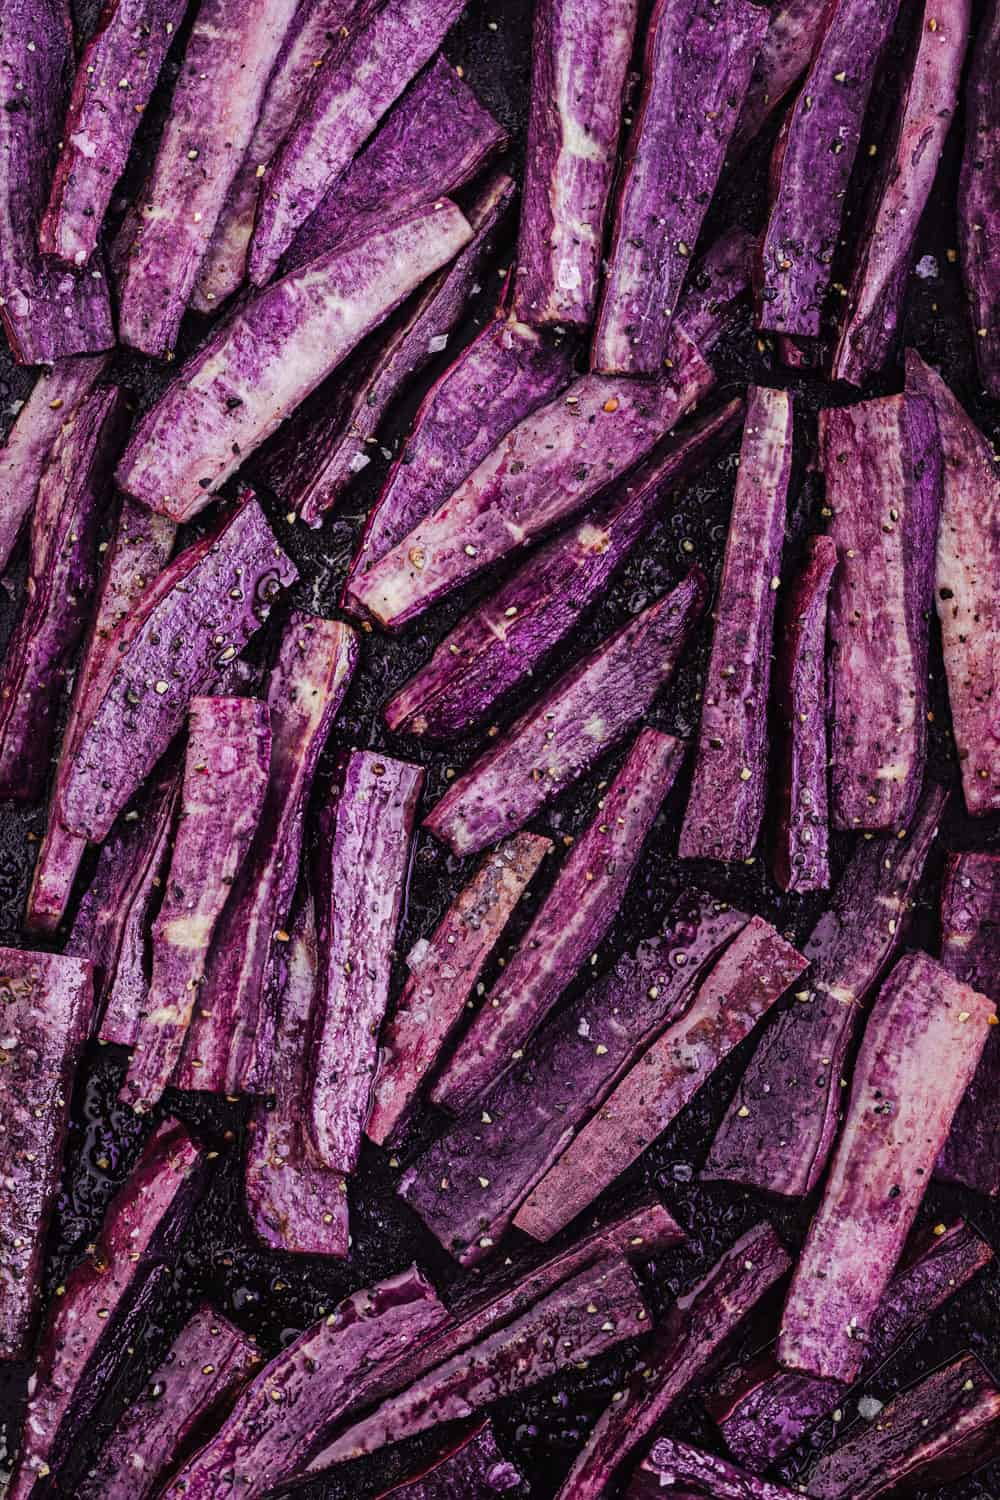 Post oven purple sweet potato wedge shot; taken overhead.